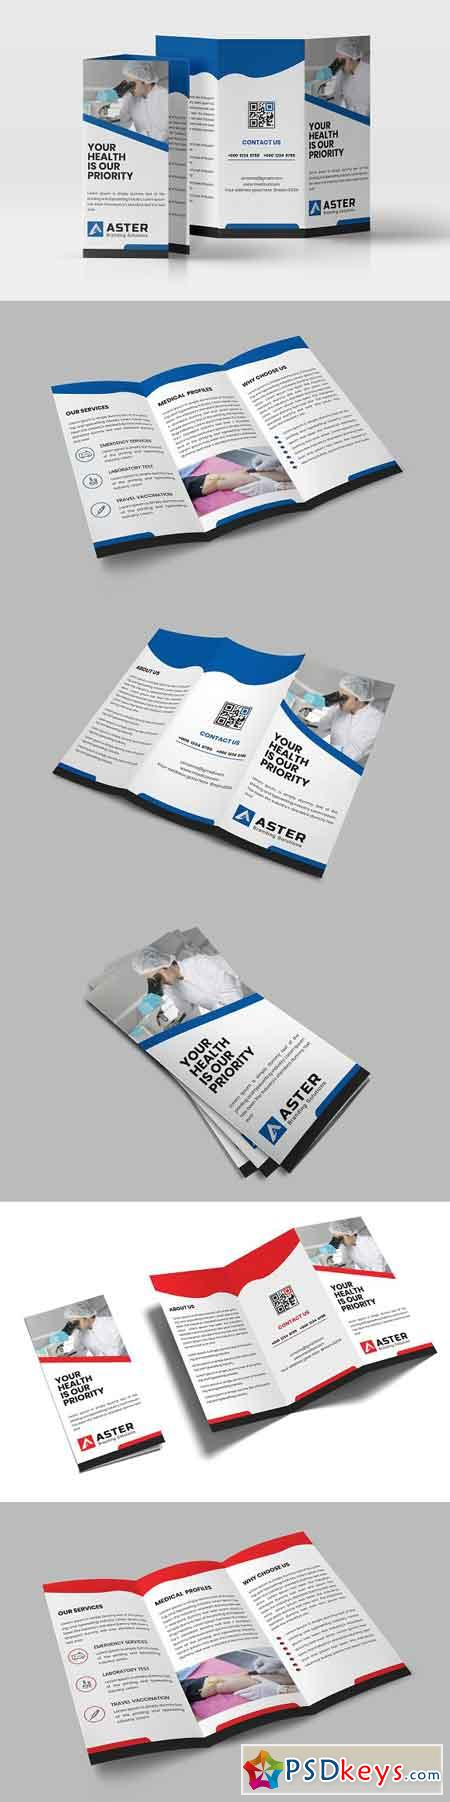 Medical Trifold Brochure 2797693